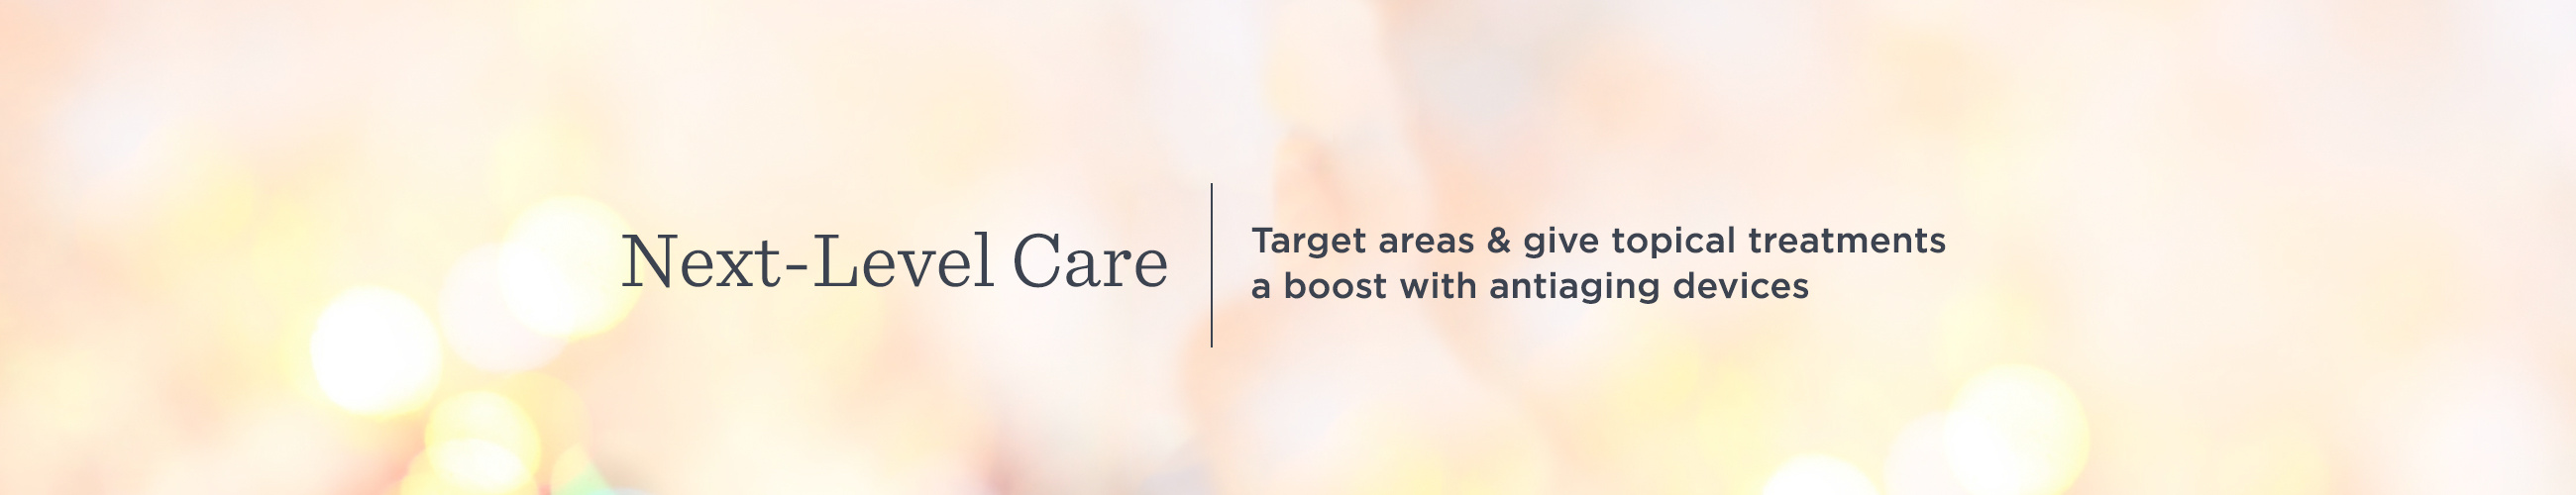 Next-Level Care. Target areas & give topical treatments a boost with antiaging devices